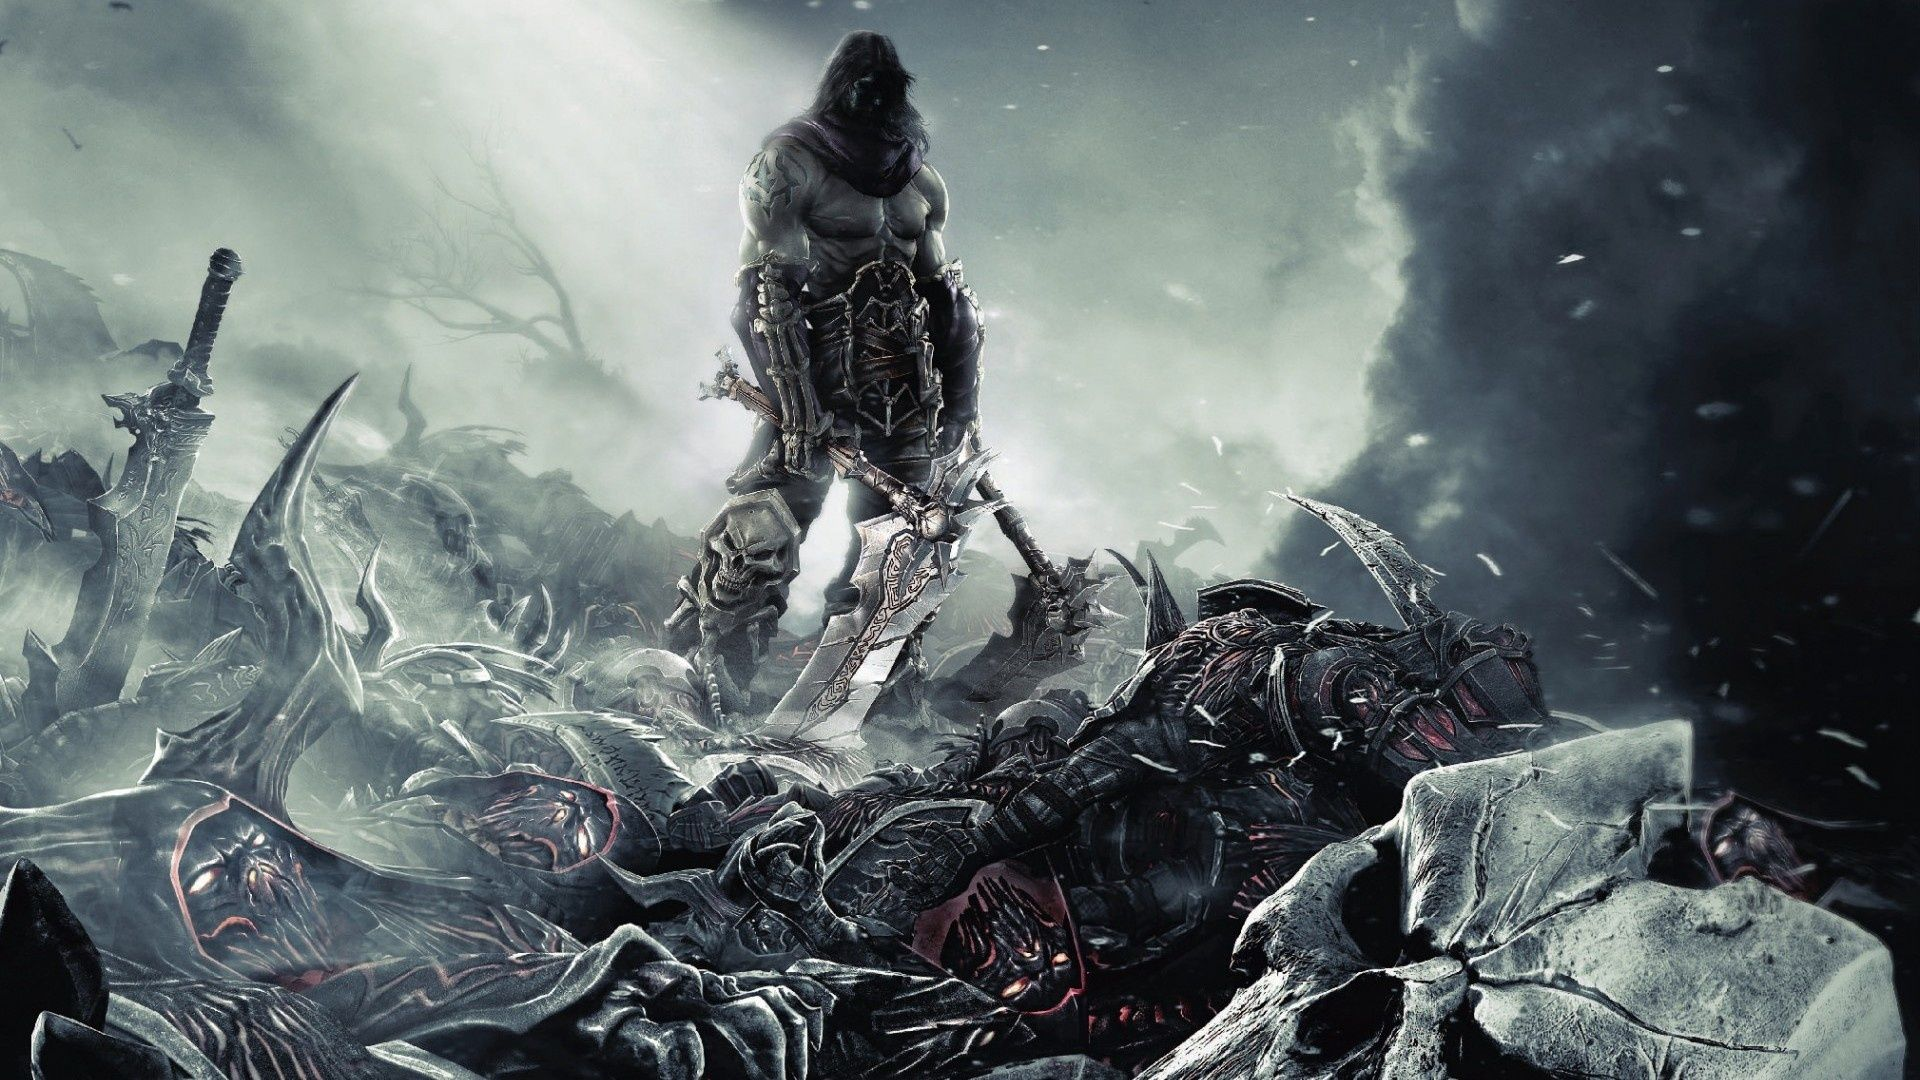 Darksiders 2 Wallpaper Related